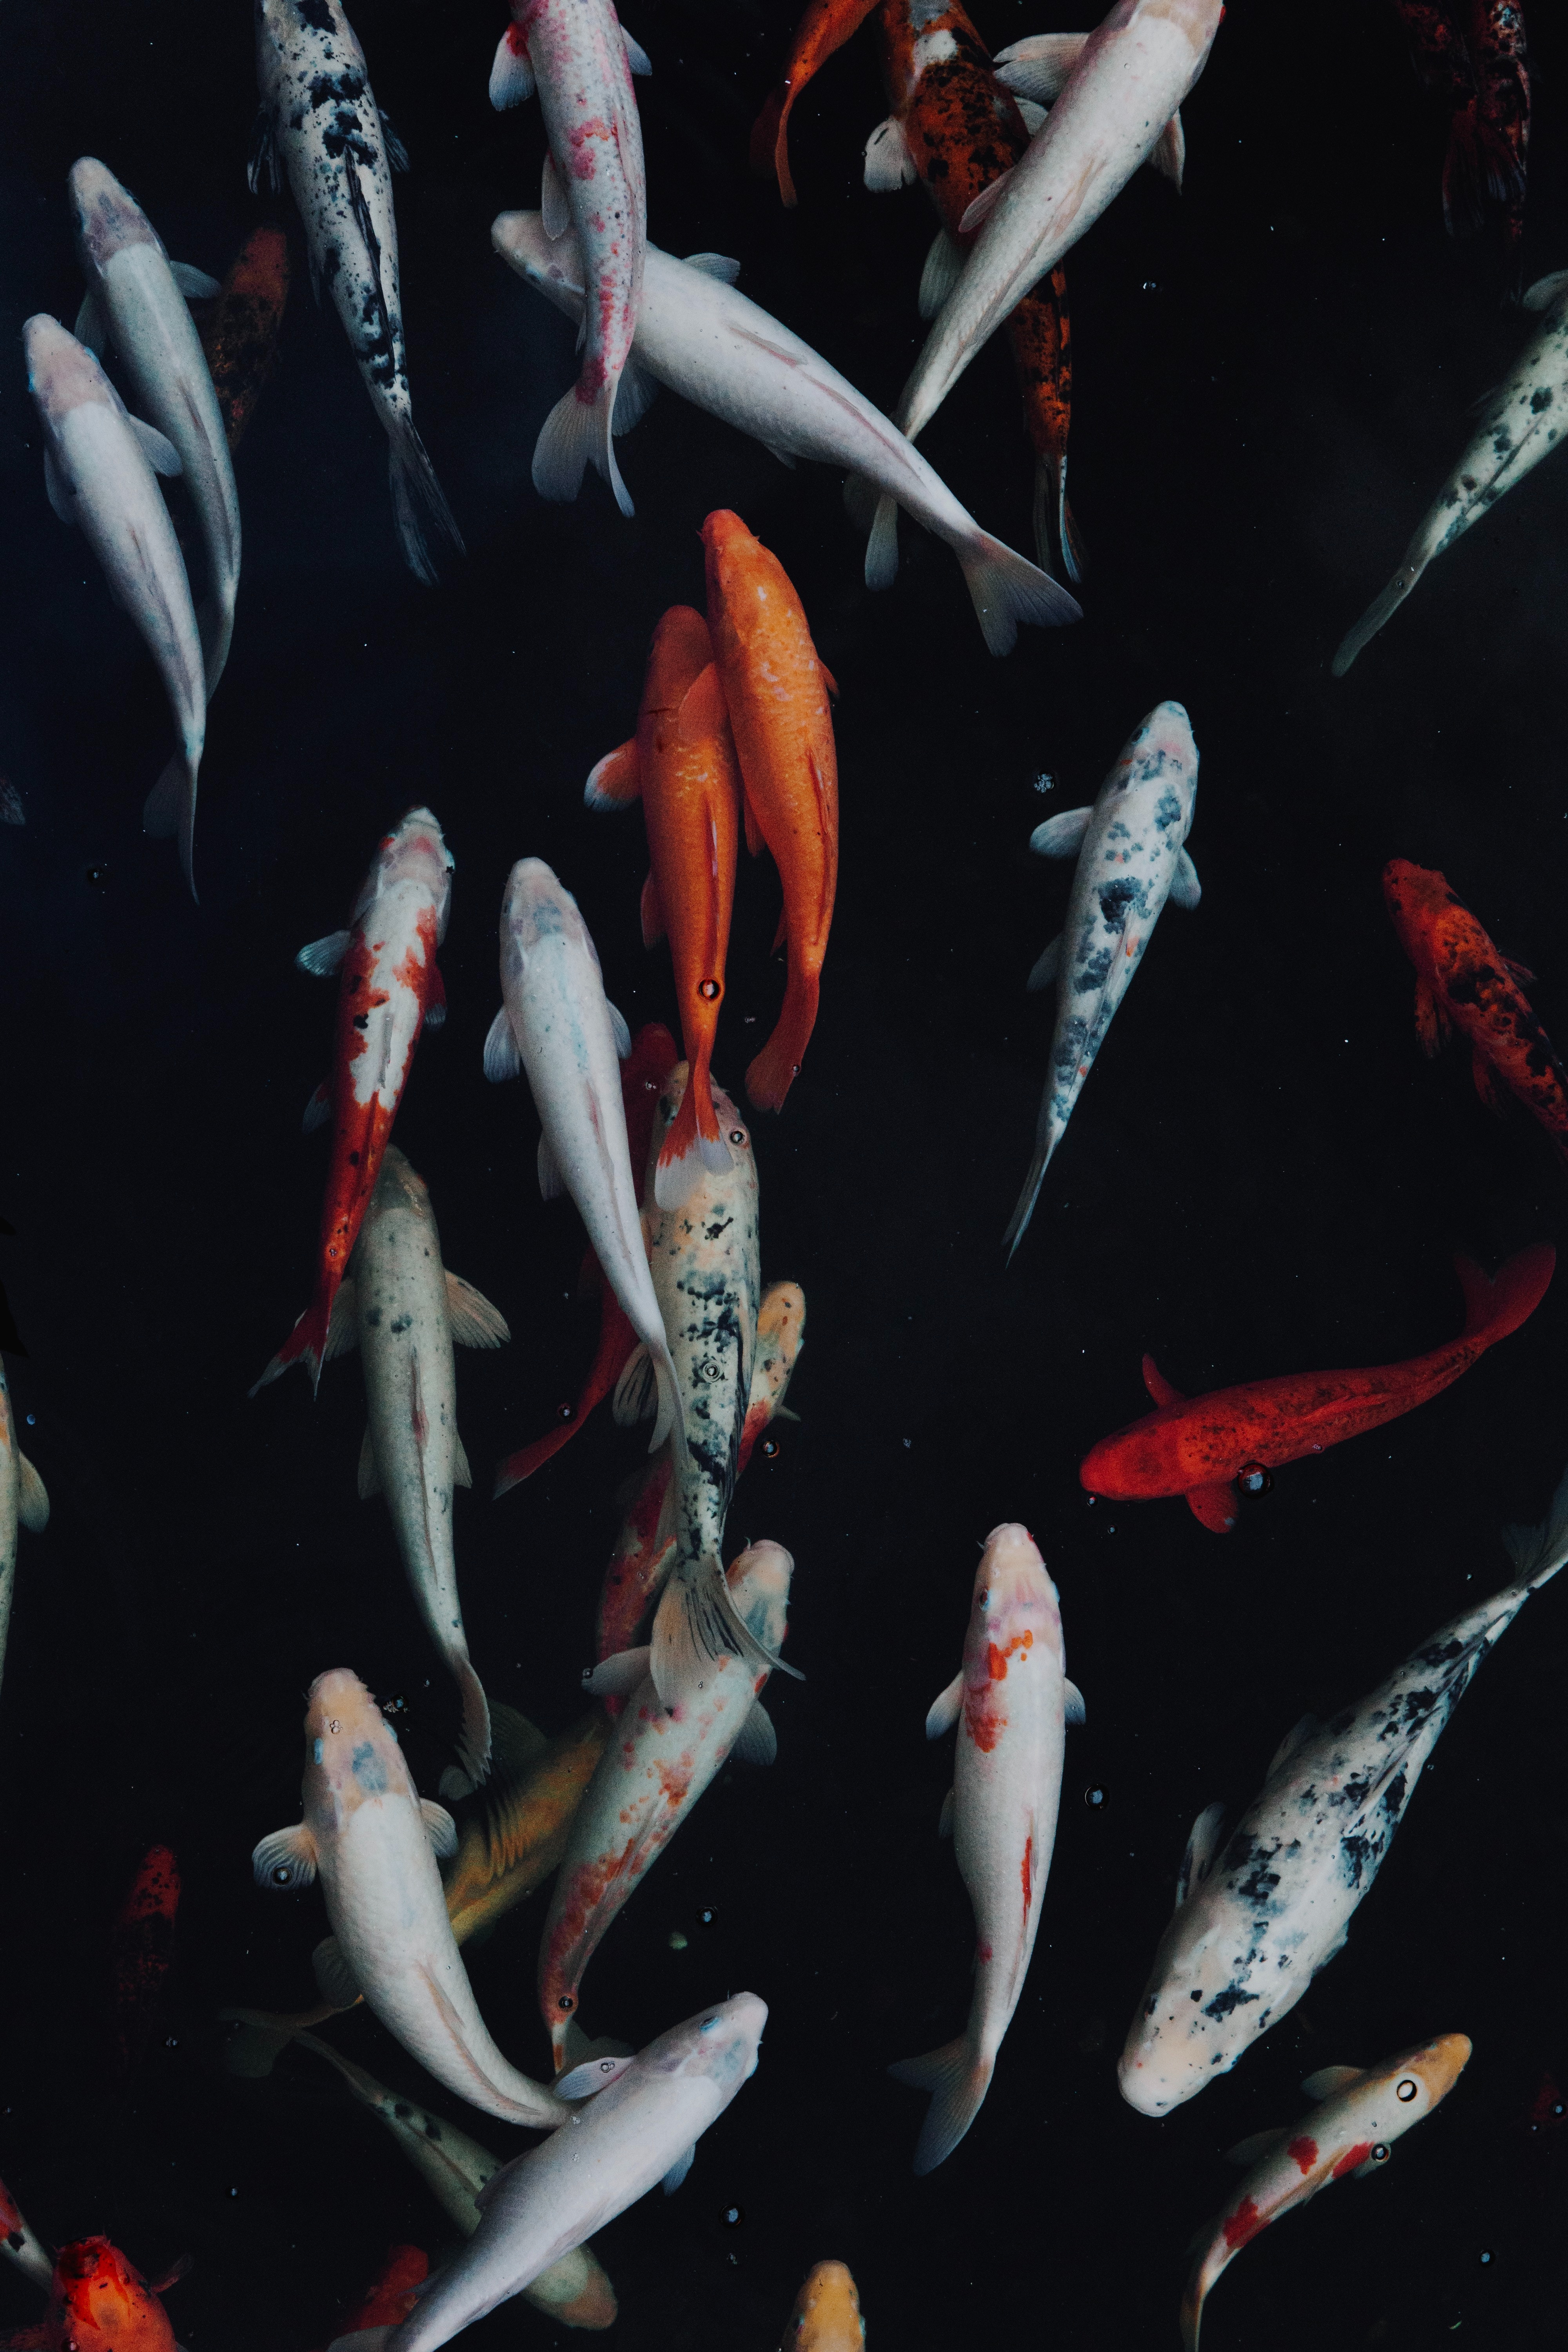 95556 download wallpaper Animals, Swimming, Underwater World, Multicolored, Motley, Fishes screensavers and pictures for free